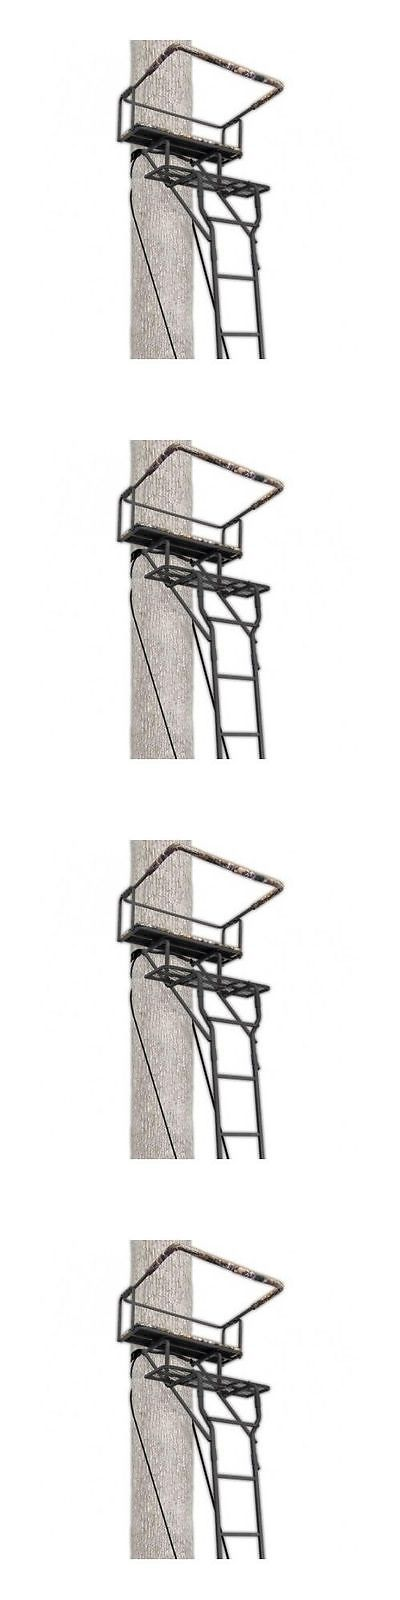 Tree Stands 52508: Ladder Tree Stand Ameristep 15 Two- Man Solid Steel 2 Seat Hunting Stand New BUY IT NOW ONLY: $1187.97